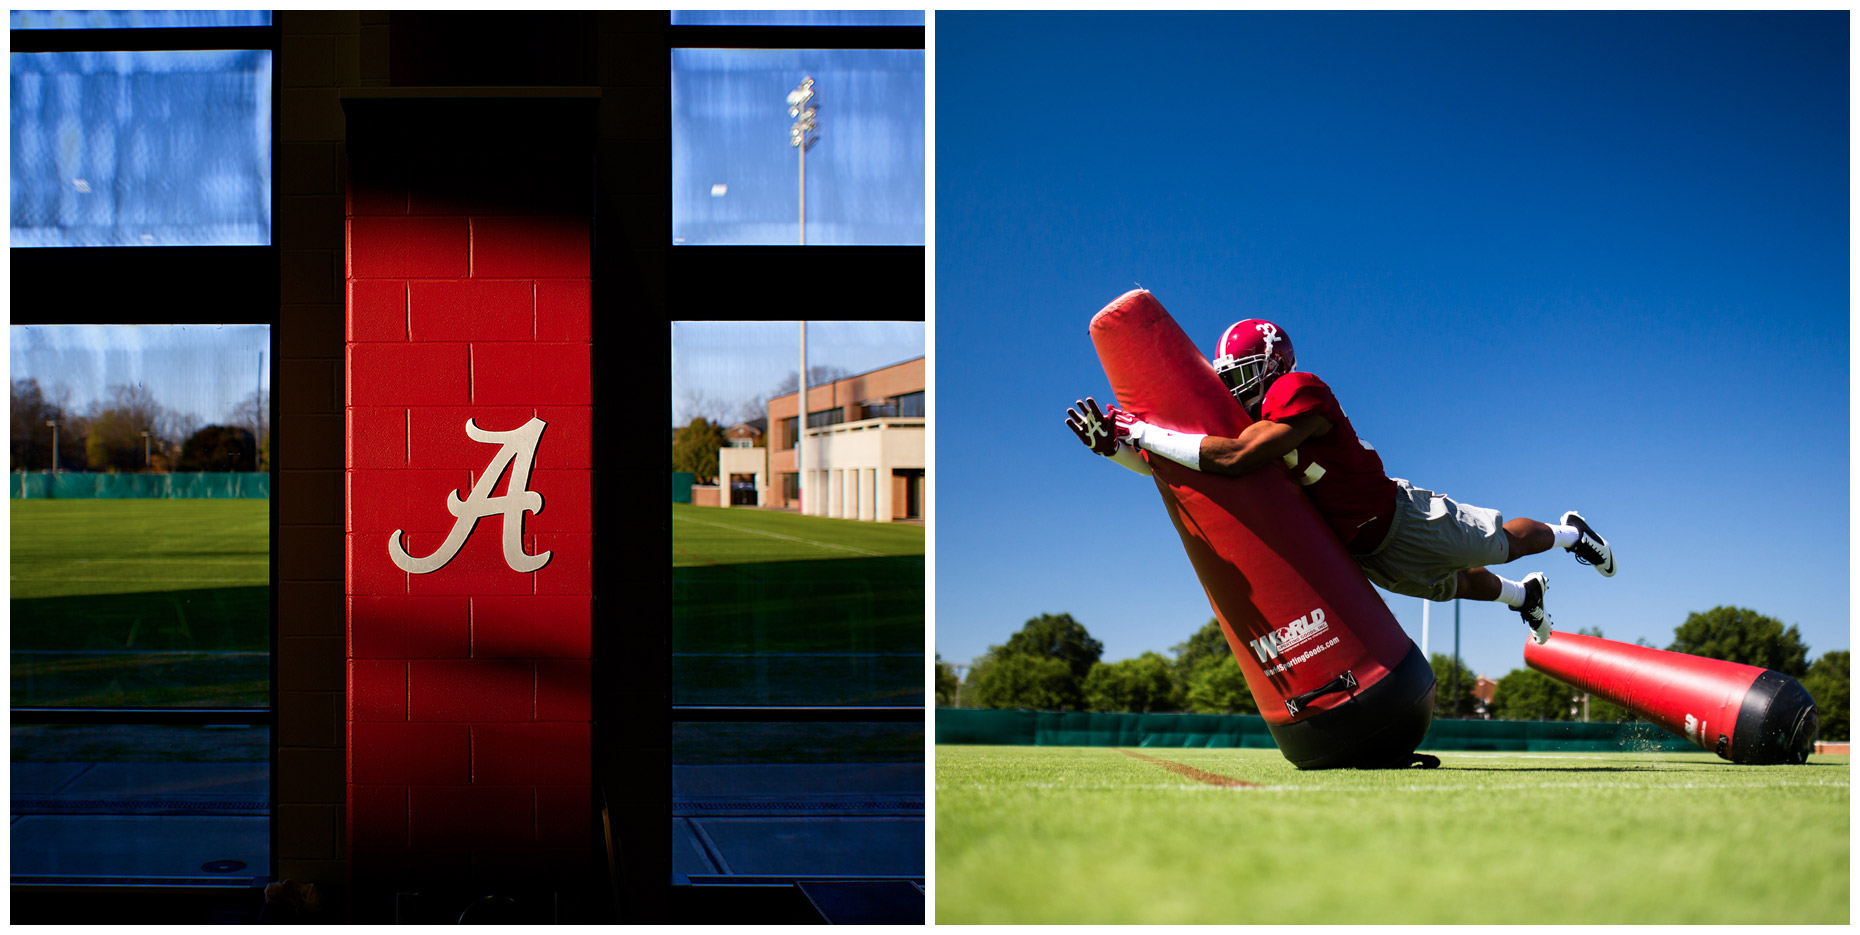 Alabama Crimson Tide | Project for Nike Digital